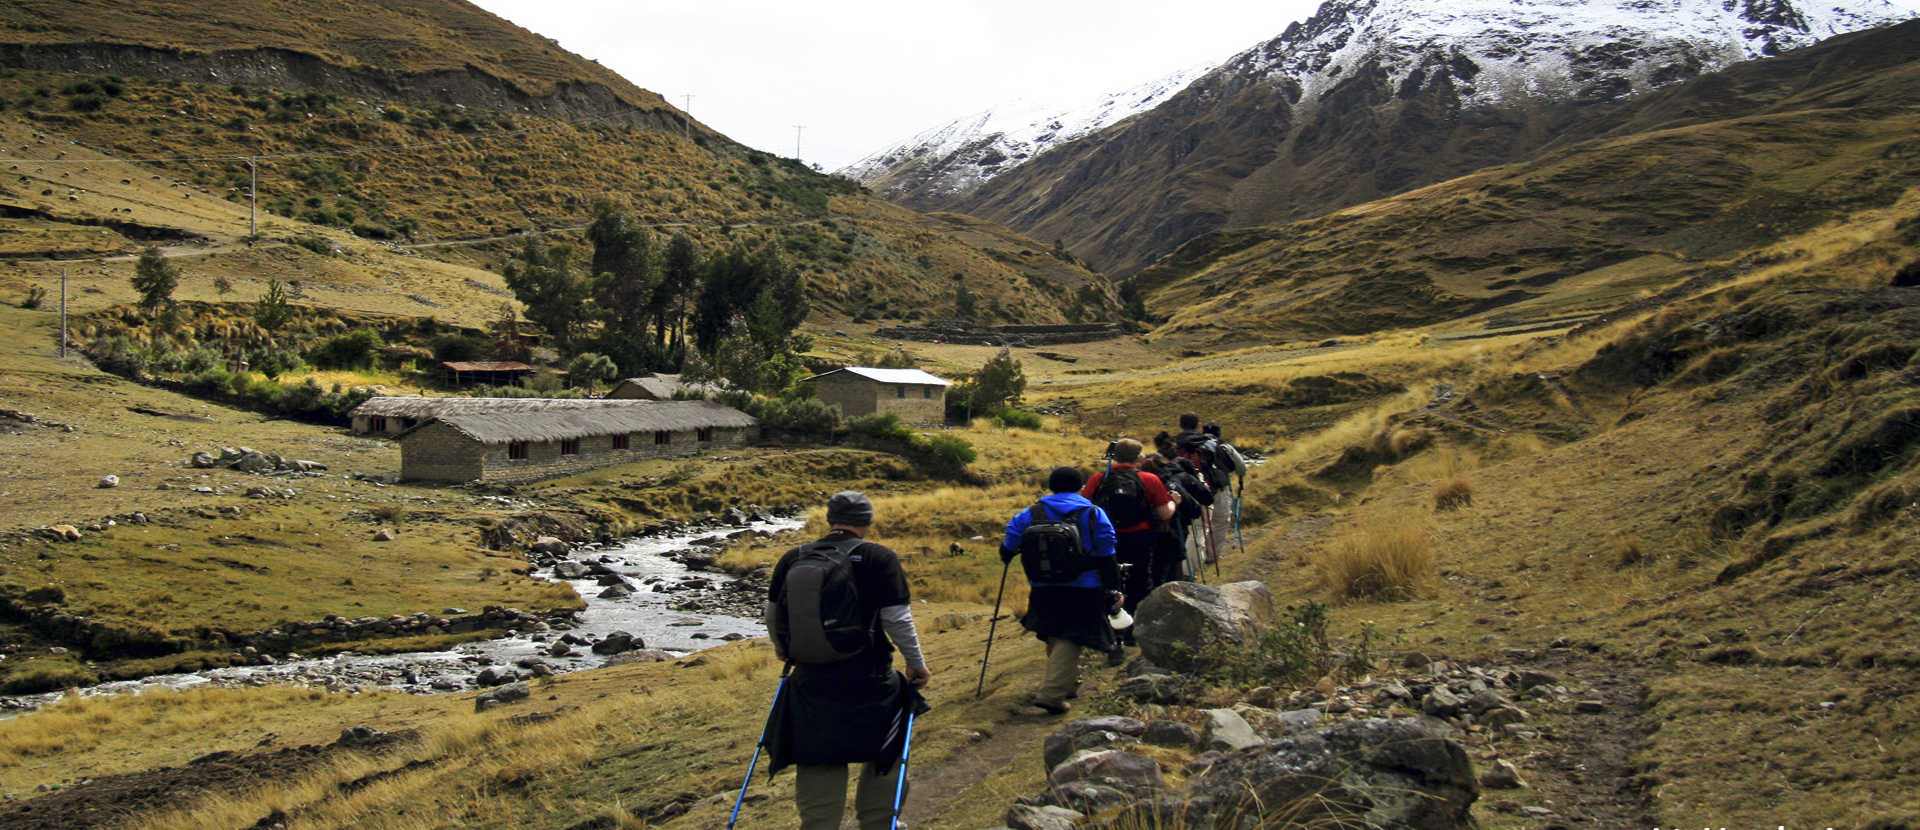 Lares Trek to MachuPicchu 4 days Inka Trail - Inka Jungle Treks